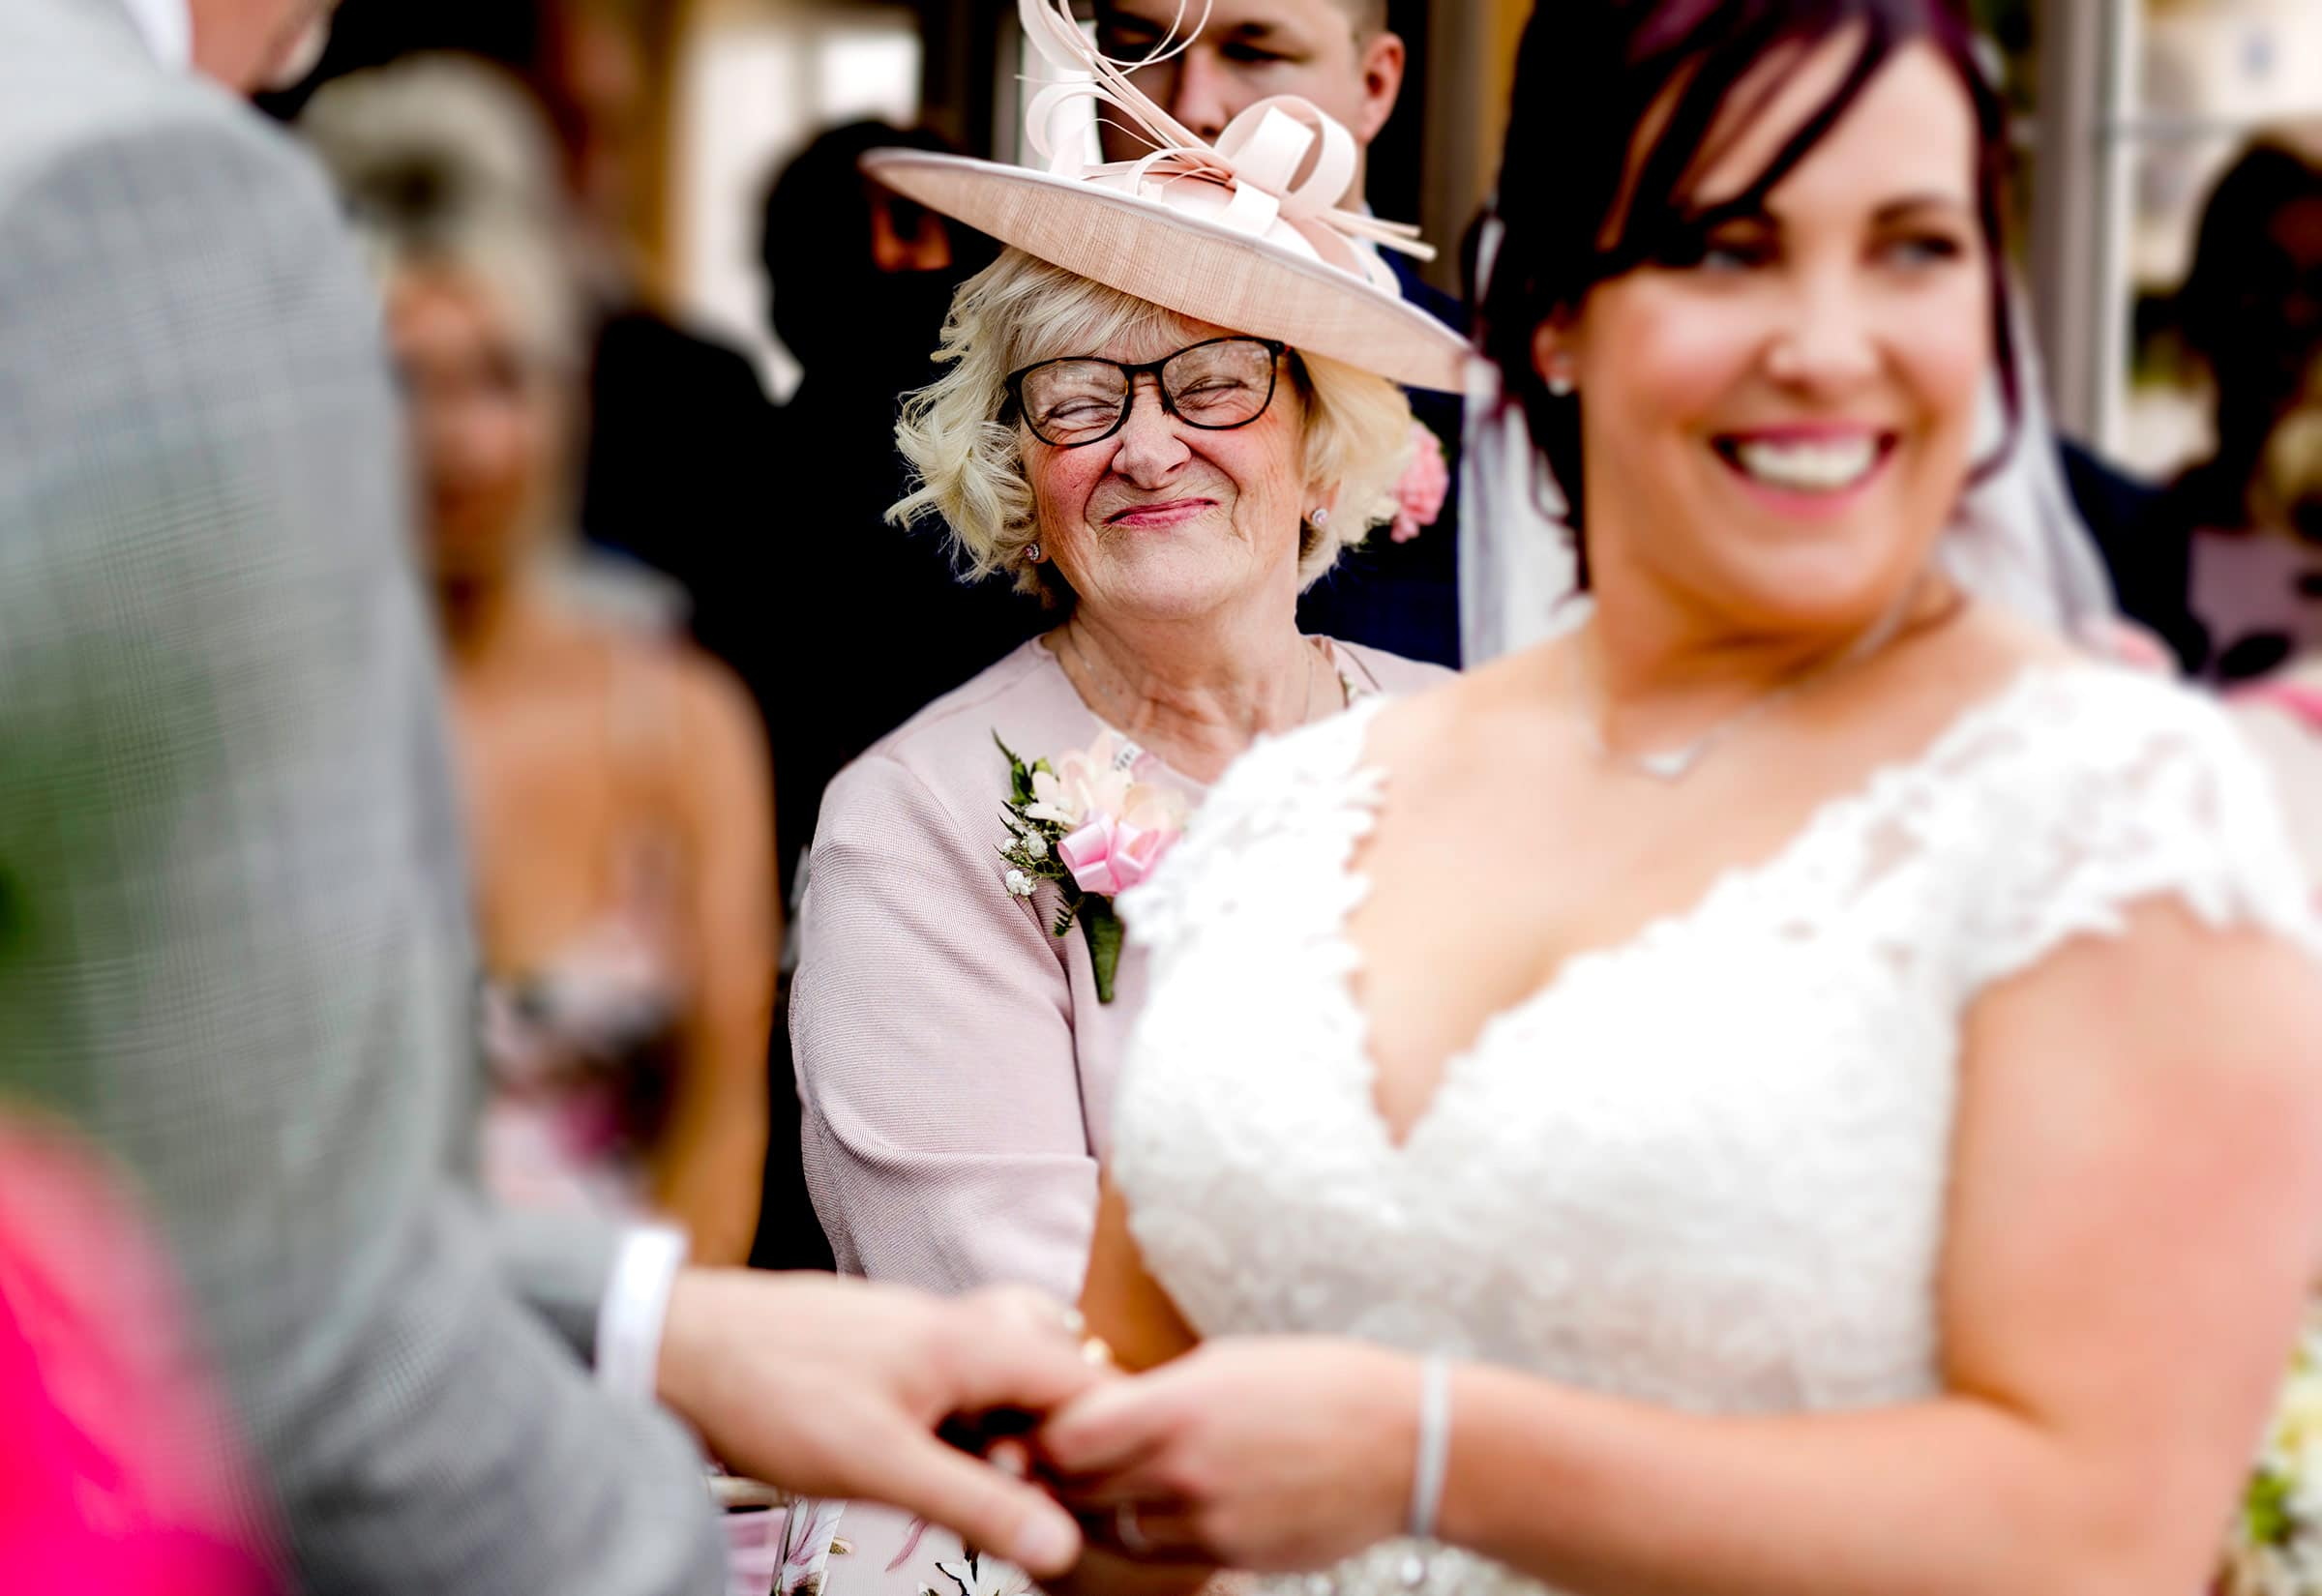 reportage wedding photography wales